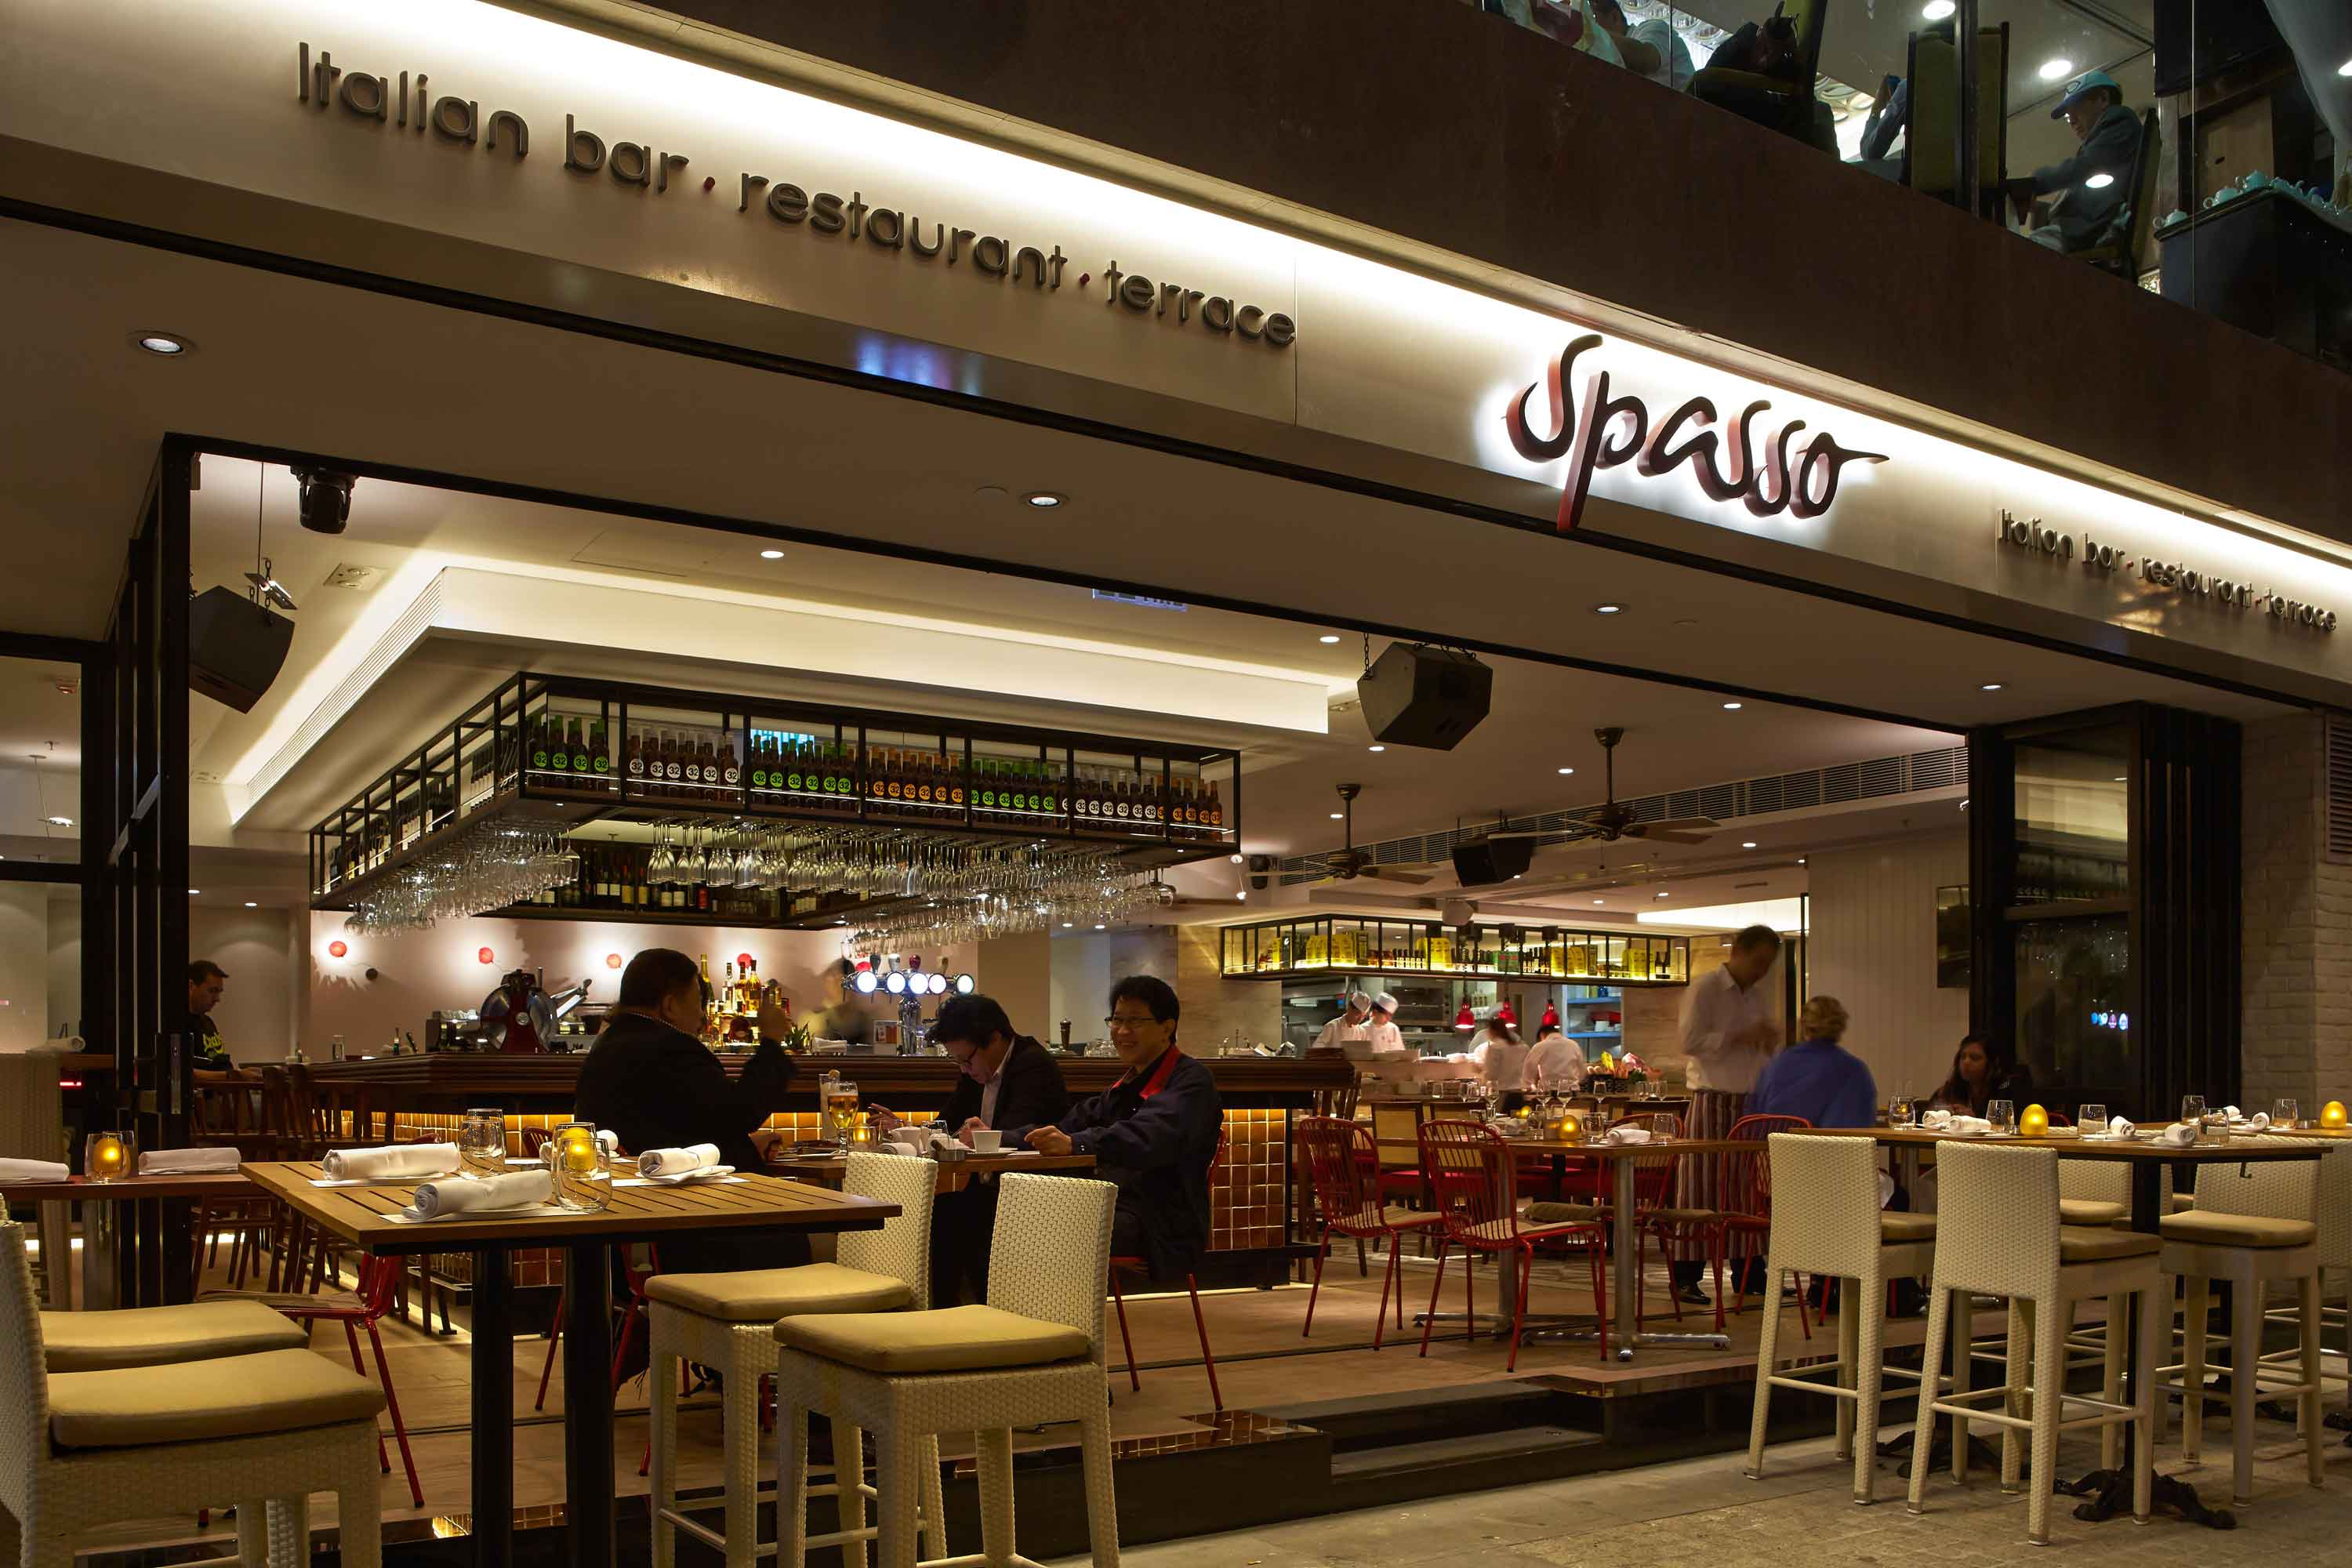 After dinnertime, Spasso offers a condensed menu of pastas, pizzas, burgers and desserts for the hungry late-night crowd.